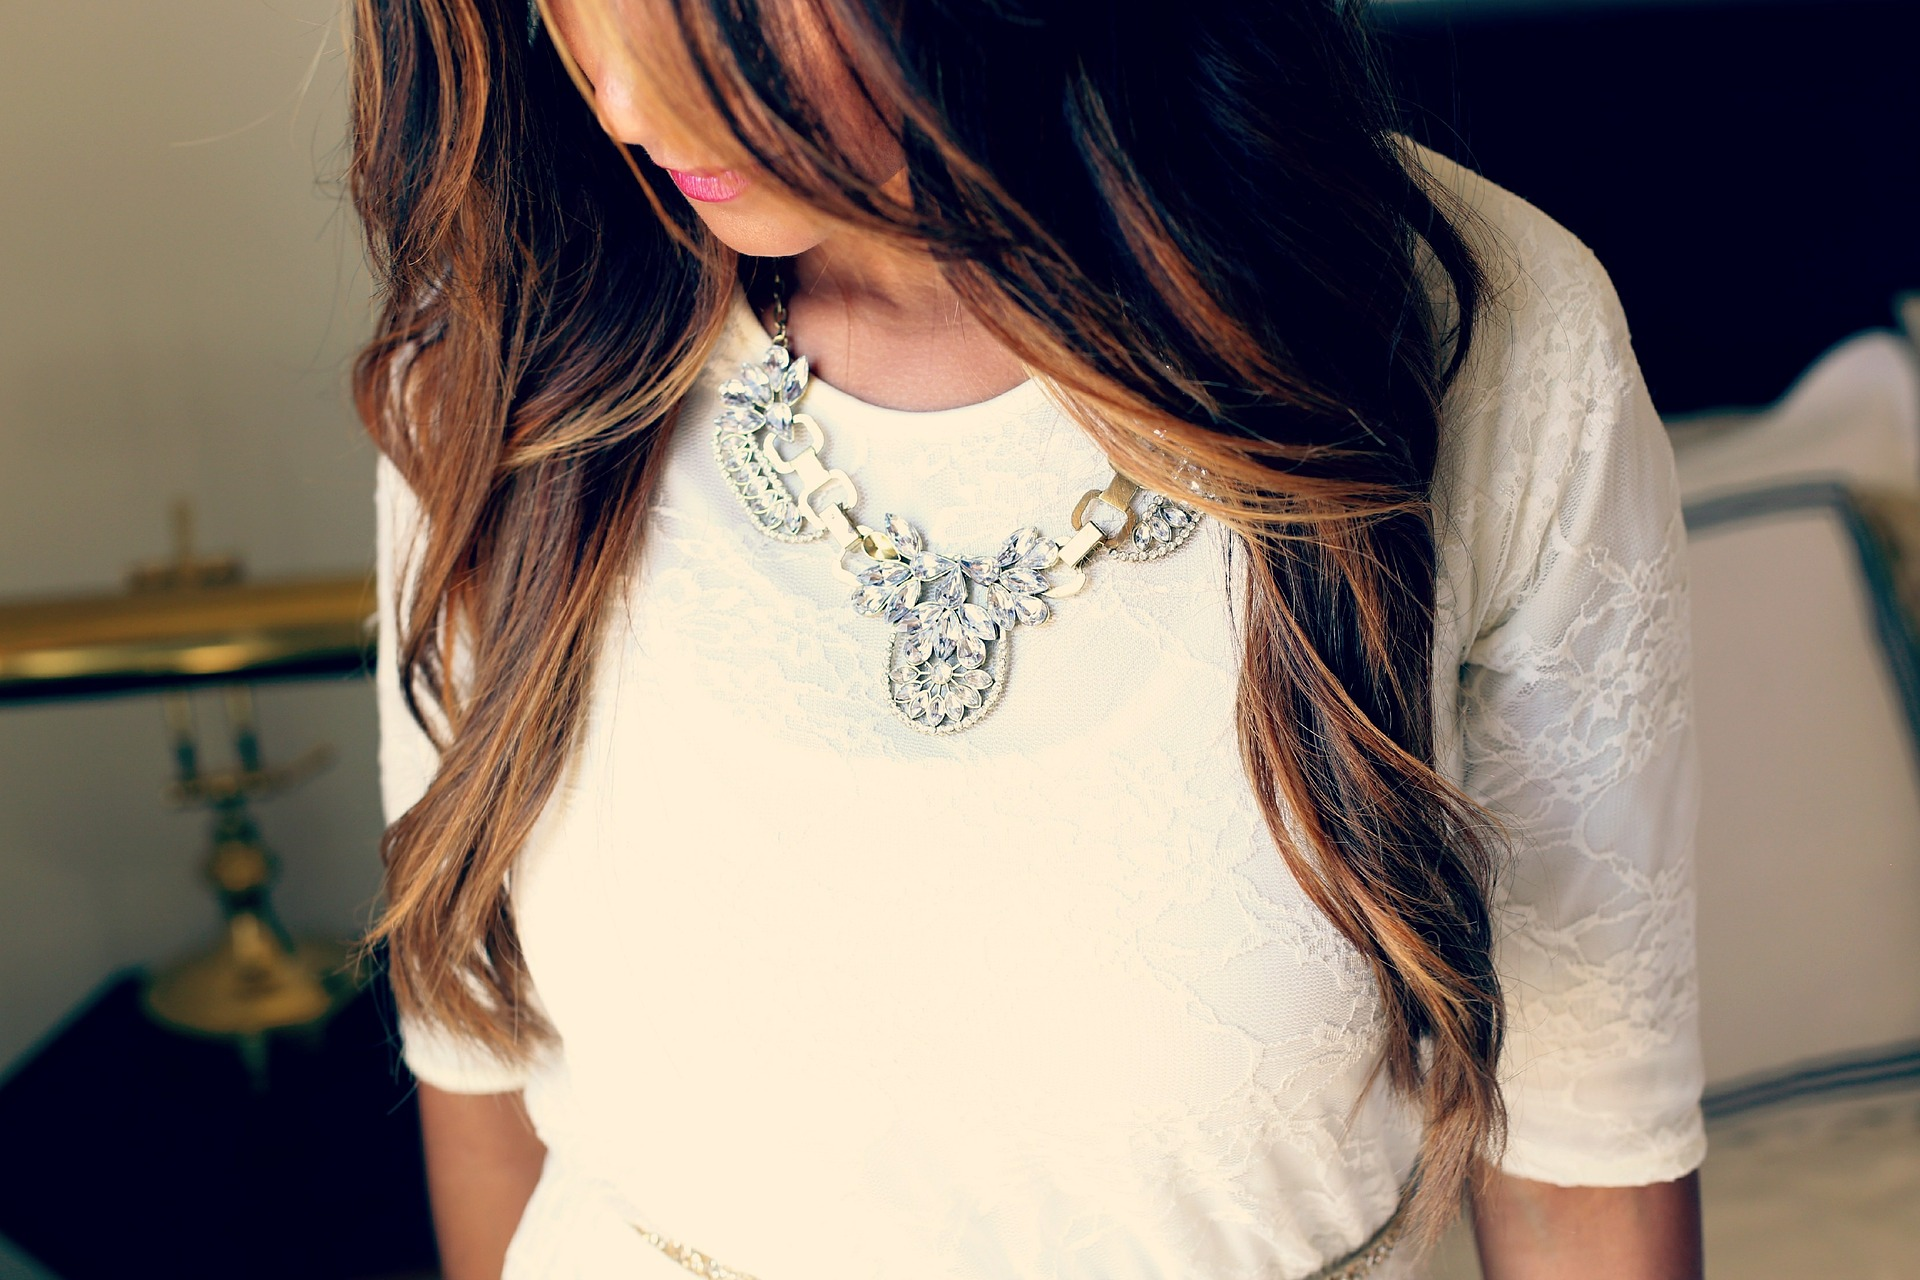 Necklace for Occasion